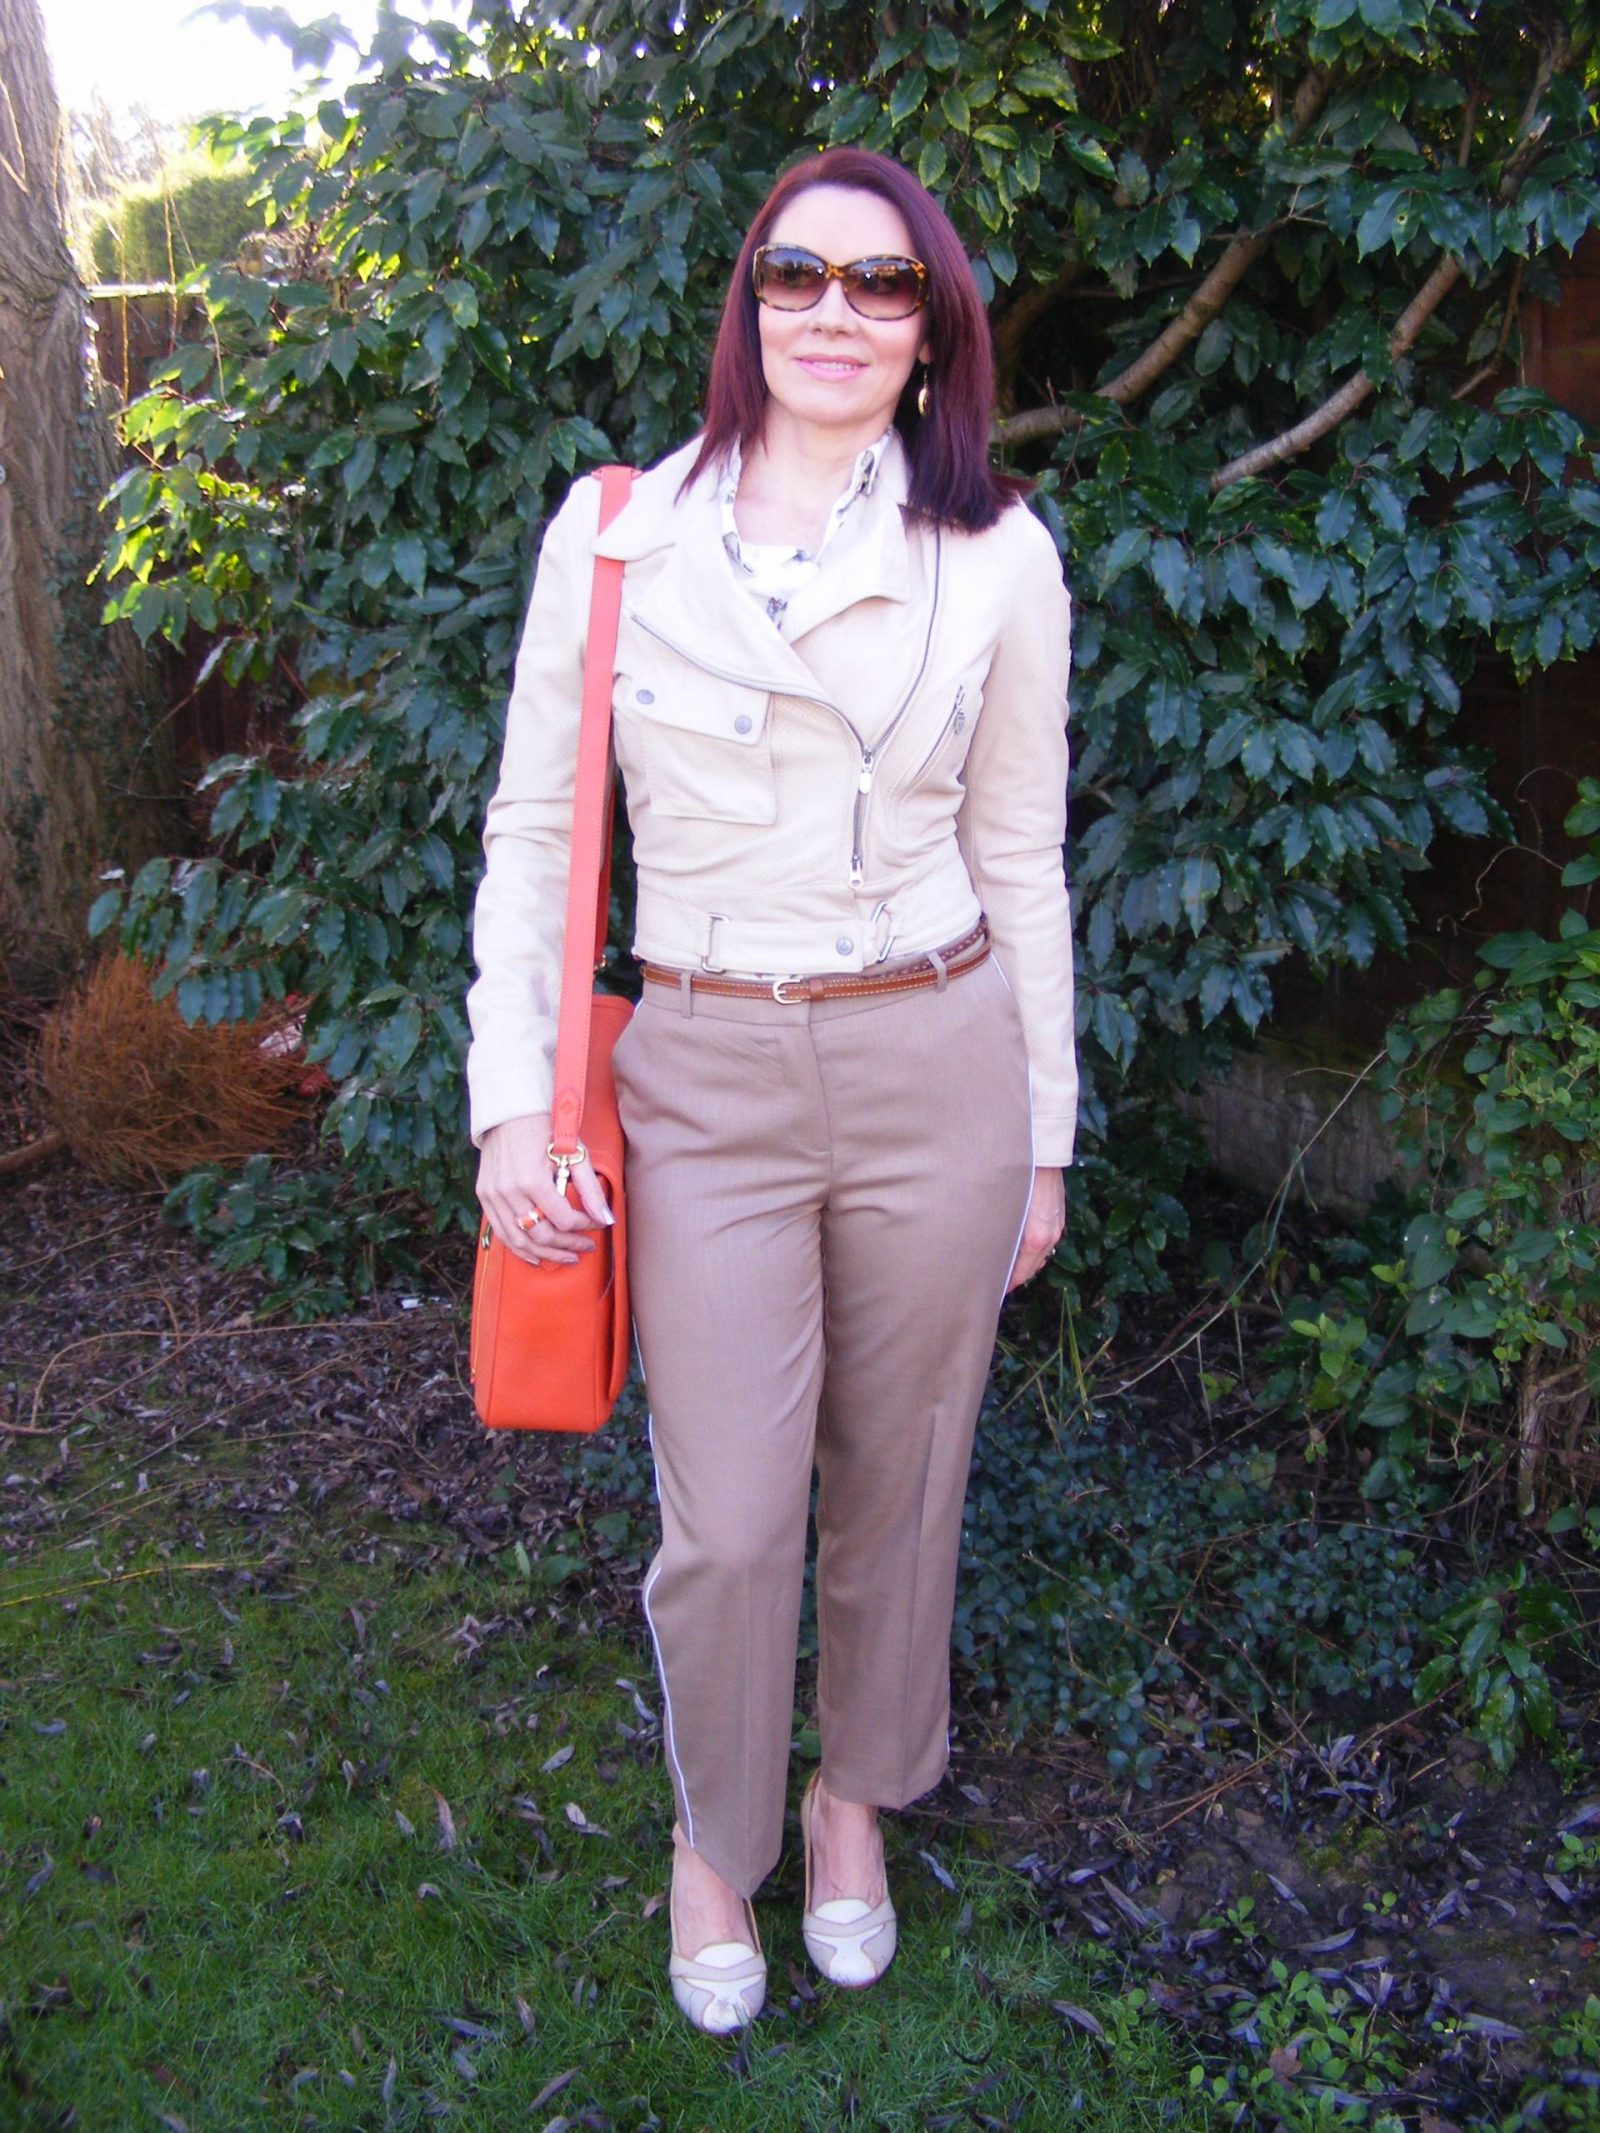 Neutrals With a Pop of Orange Zara shirt Model KT bag Asos trousers Belstaff leather jacket Model KT bag